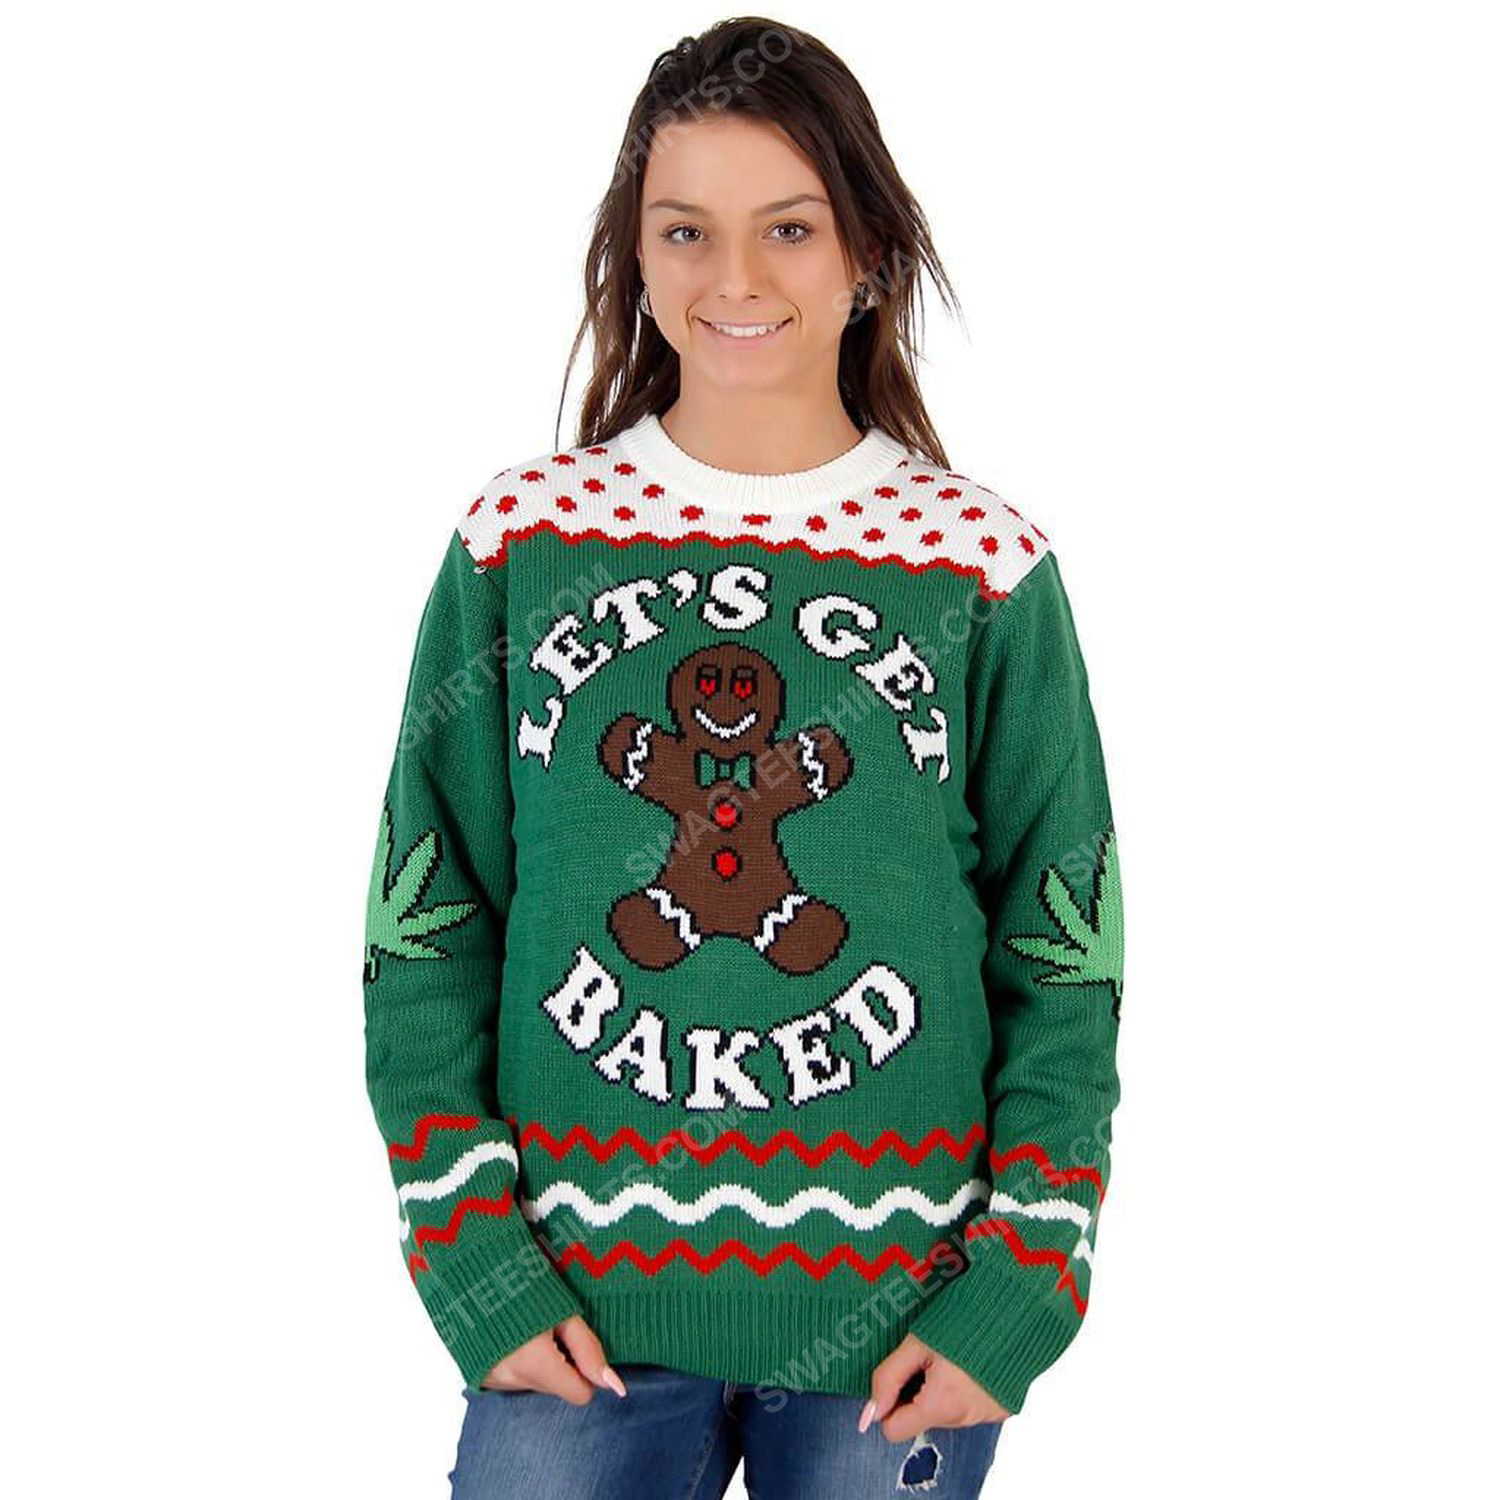 Let's get baked happy gingerbread ugly christmas sweater 2